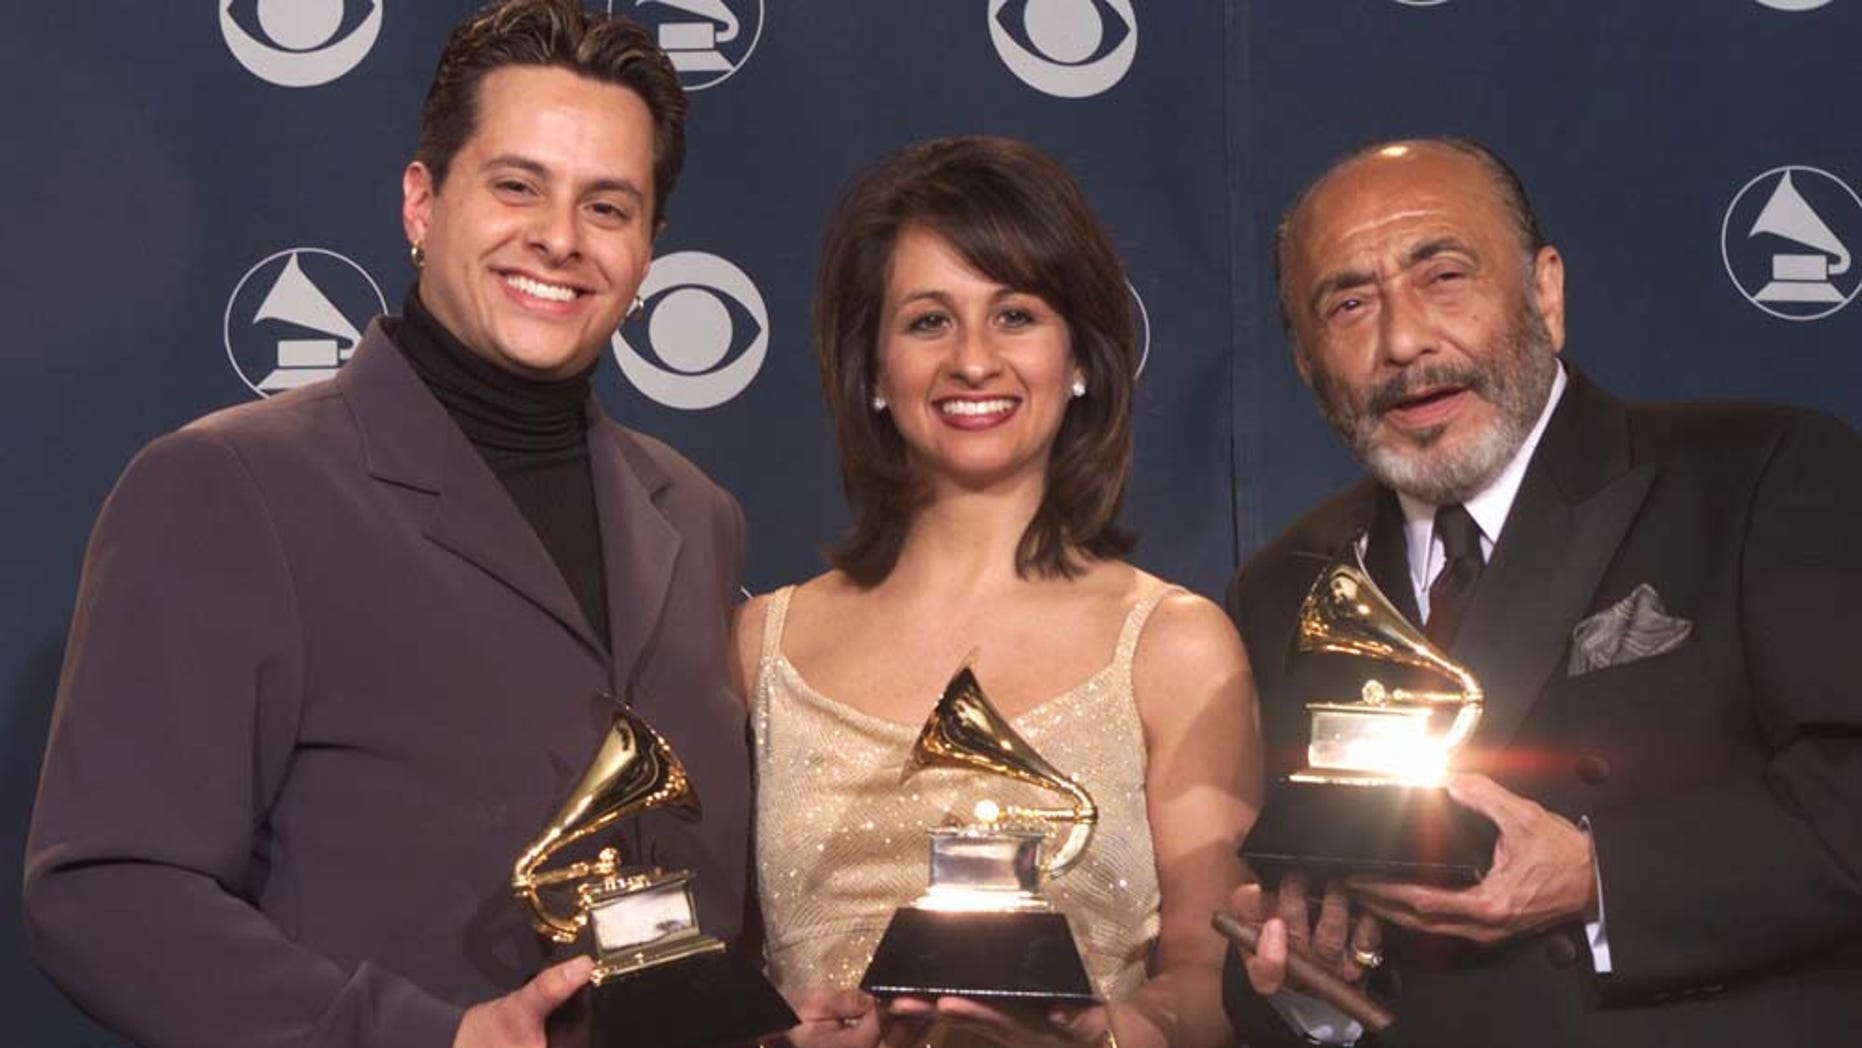 Tito Puente Jr.(left), sister Audrey, and Eddie Palmieri pose with Grammys for Best Salsa Album backstage at the 43rd Annual Grammy Awards at Staples Center in Los Angeles Wednesday, Feb. 21, 2001.